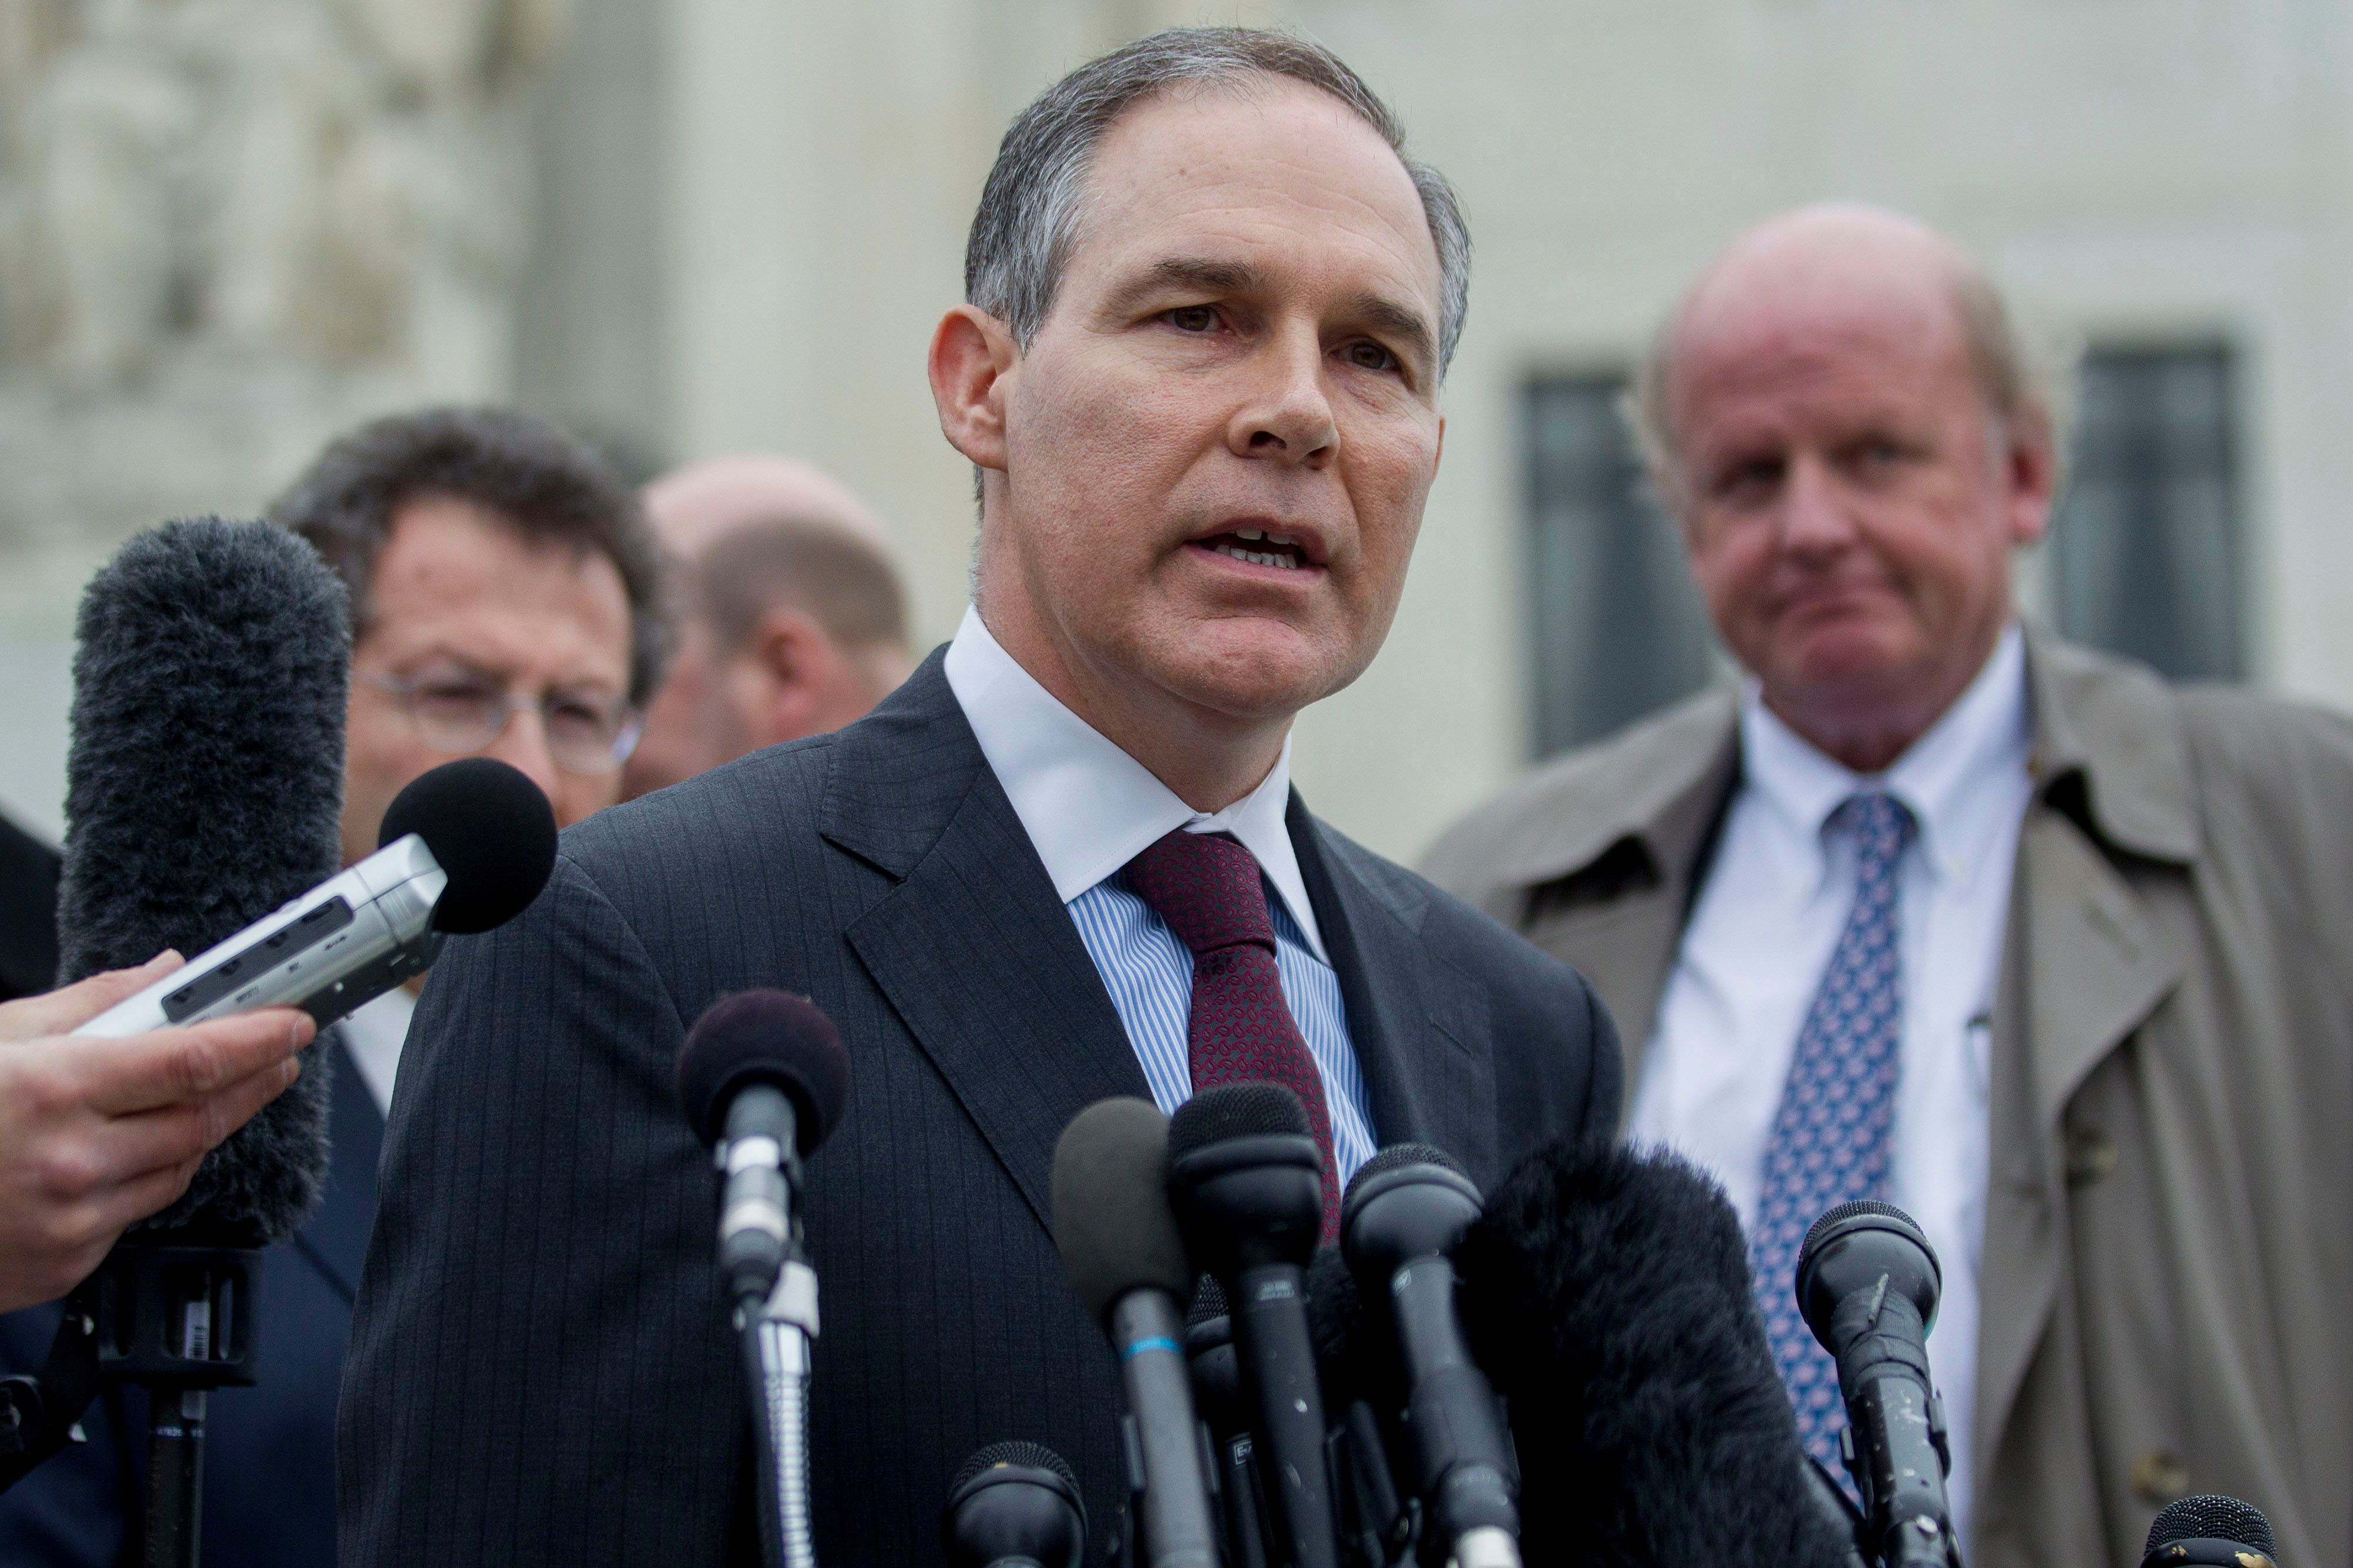 Scott Pruitt, attorney general of Oklahoma, center, speaks to the media in front of the U.S. Supreme Court with Michael Carvin, lead attorney for the petitioners and partner at Jones Day, right, and Sam Kazman, general counsel with the Competitive Enterprise Institute, left, in Washington, D.C., U.S., on Wednesday, March 4, 2015. A U.S. Supreme Court argument over Obamacare's tax subsidies divided the justices along ideological lines, potentially leaving two pivotal justices to decide the law's fate. Photographer: Andrew Harrer/Bloomberg via Getty Images